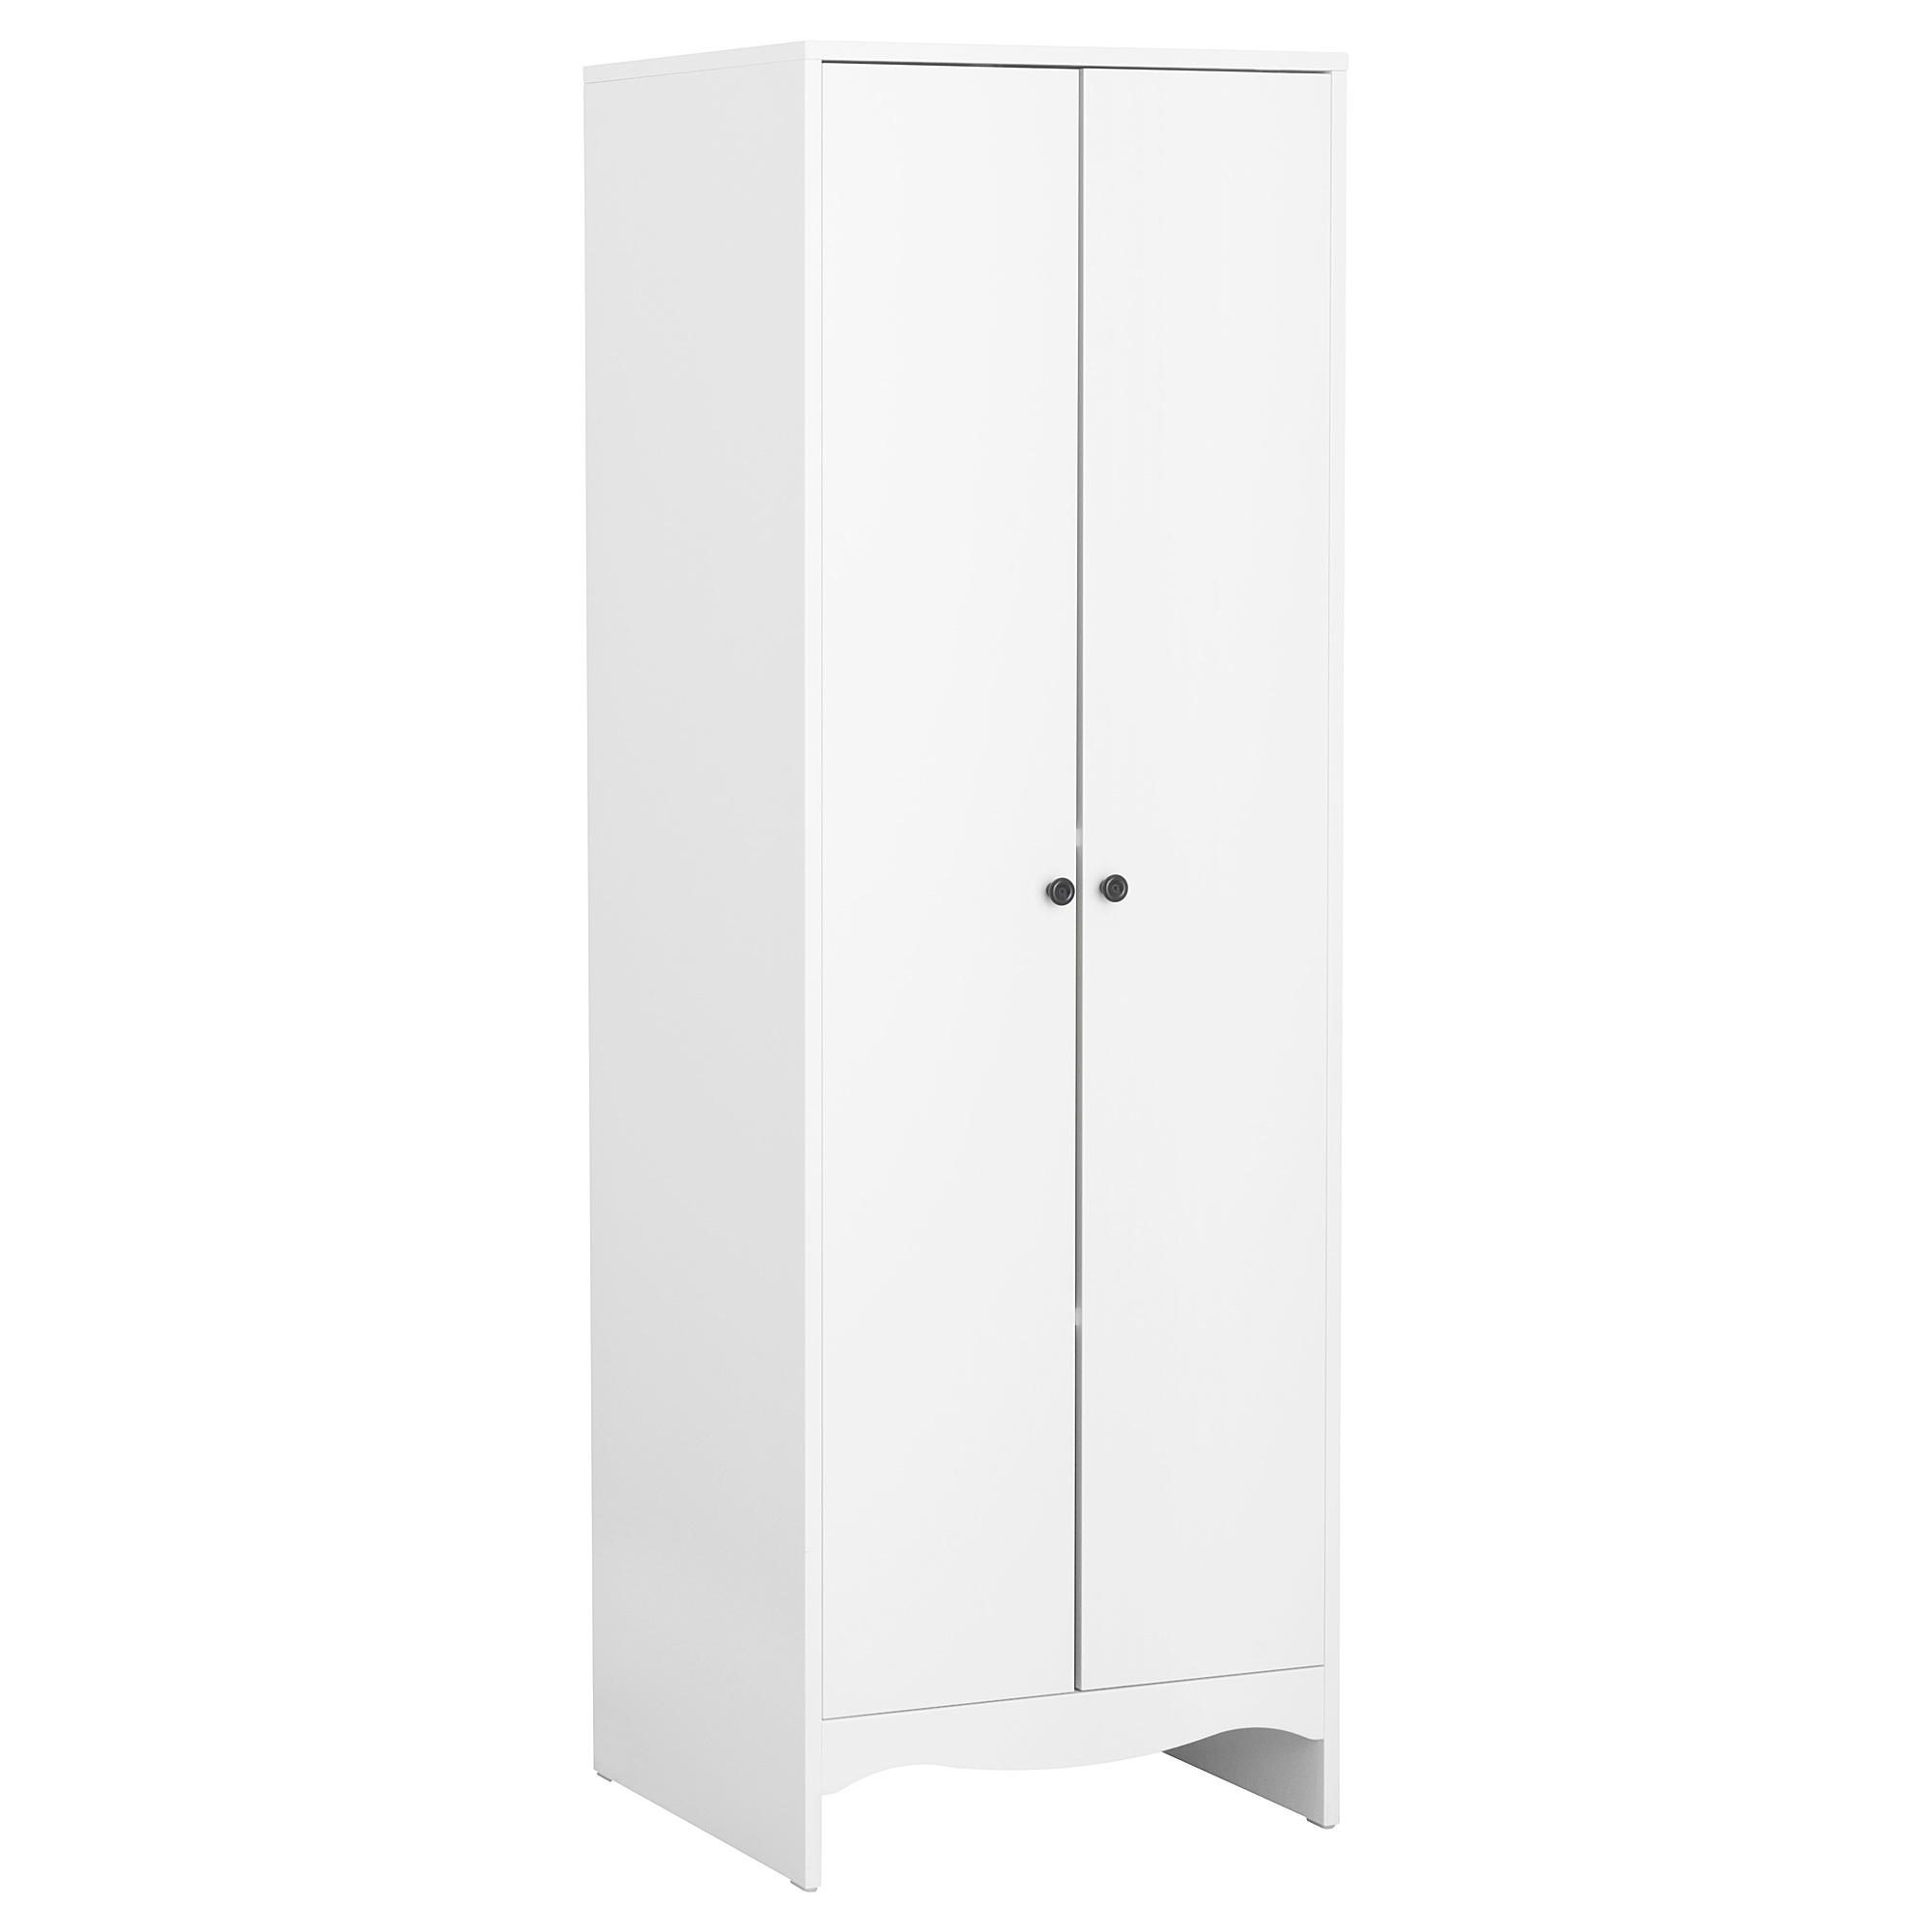 Children's Wardrobes – Nursery Wardrobes – Ikea Inside Recent Childrens Tallboy Wardrobes (View 2 of 15)